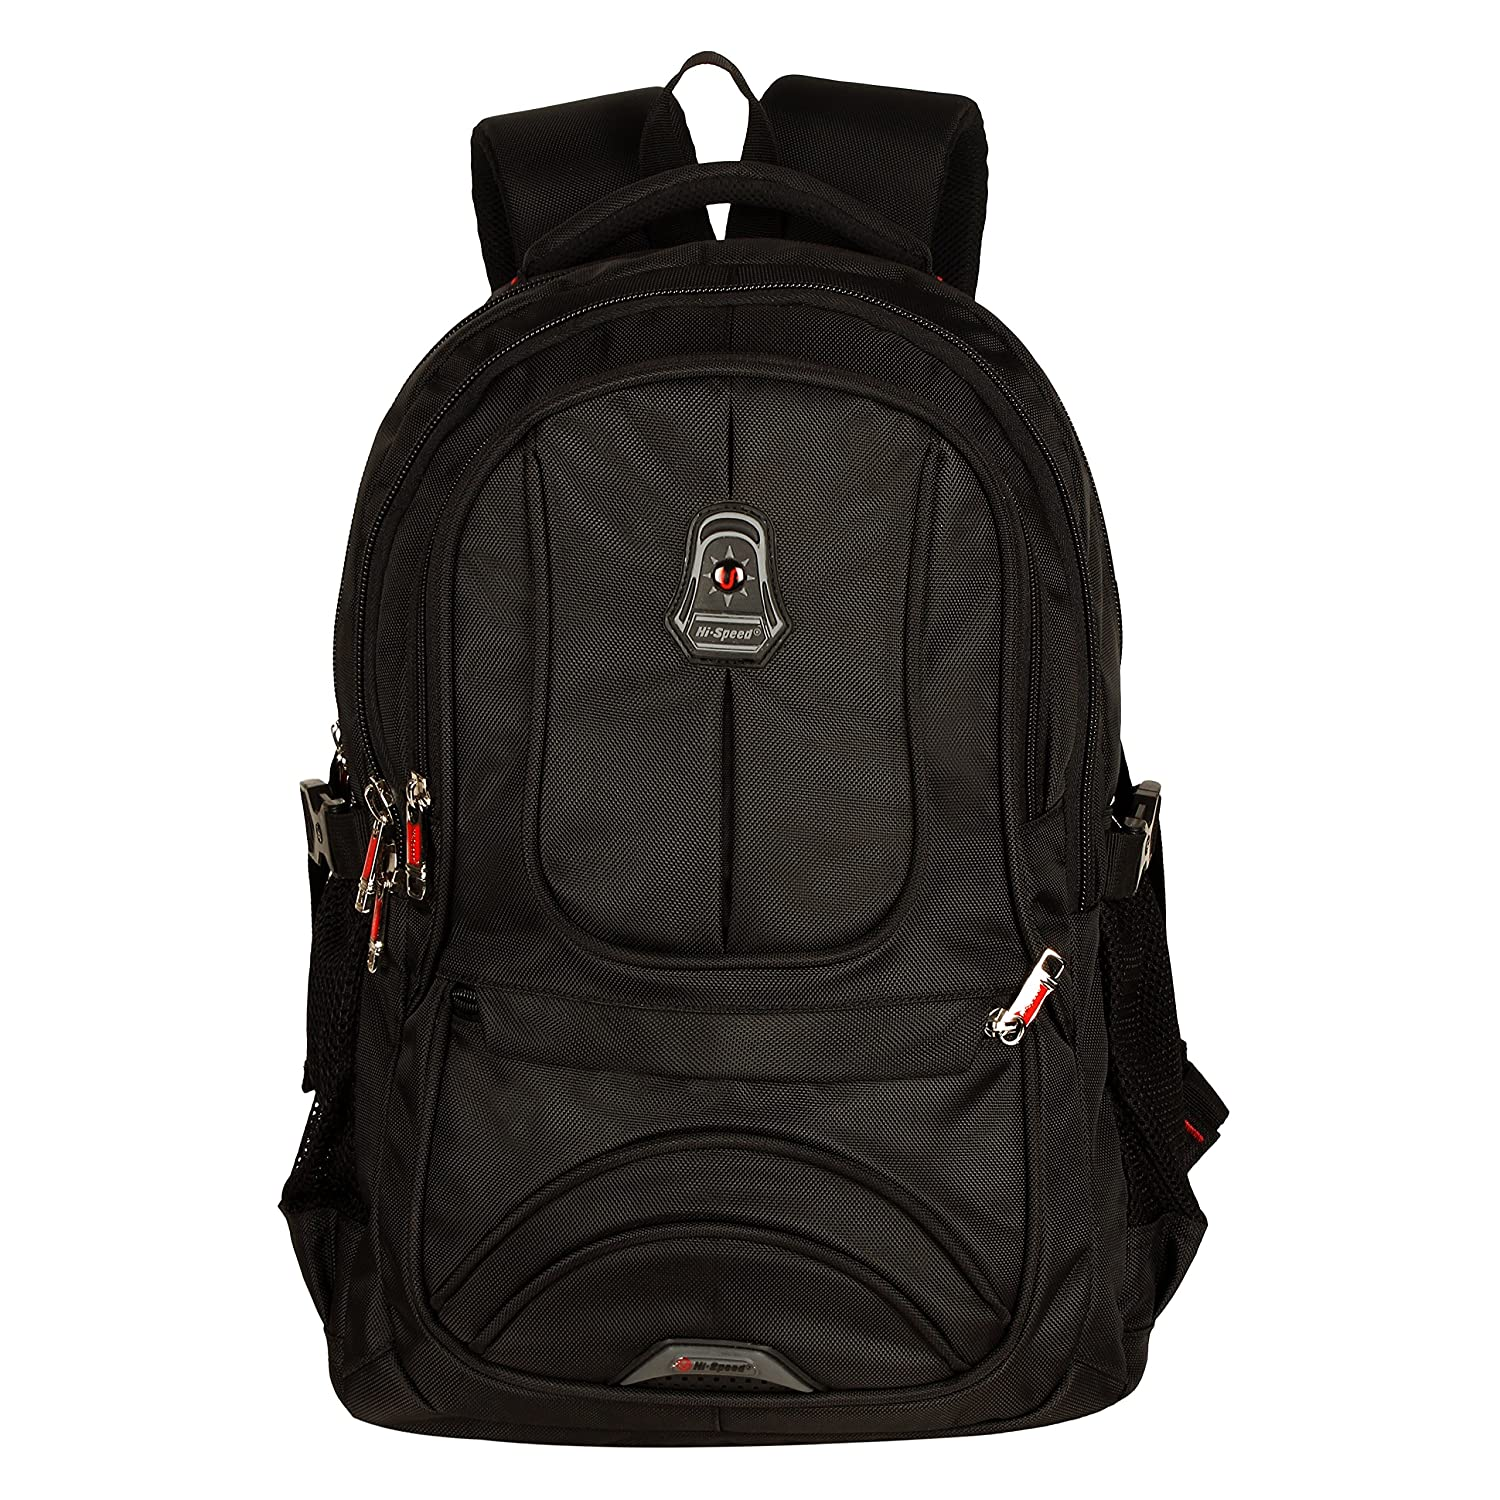 ddbe4d376f8 Hi-Speed Black Polyester College Backpack | School Bag | Casual Bag |  Shoulder Backpacks for Girls & Boys with Rain Cover: Amazon.in: Bags, ...